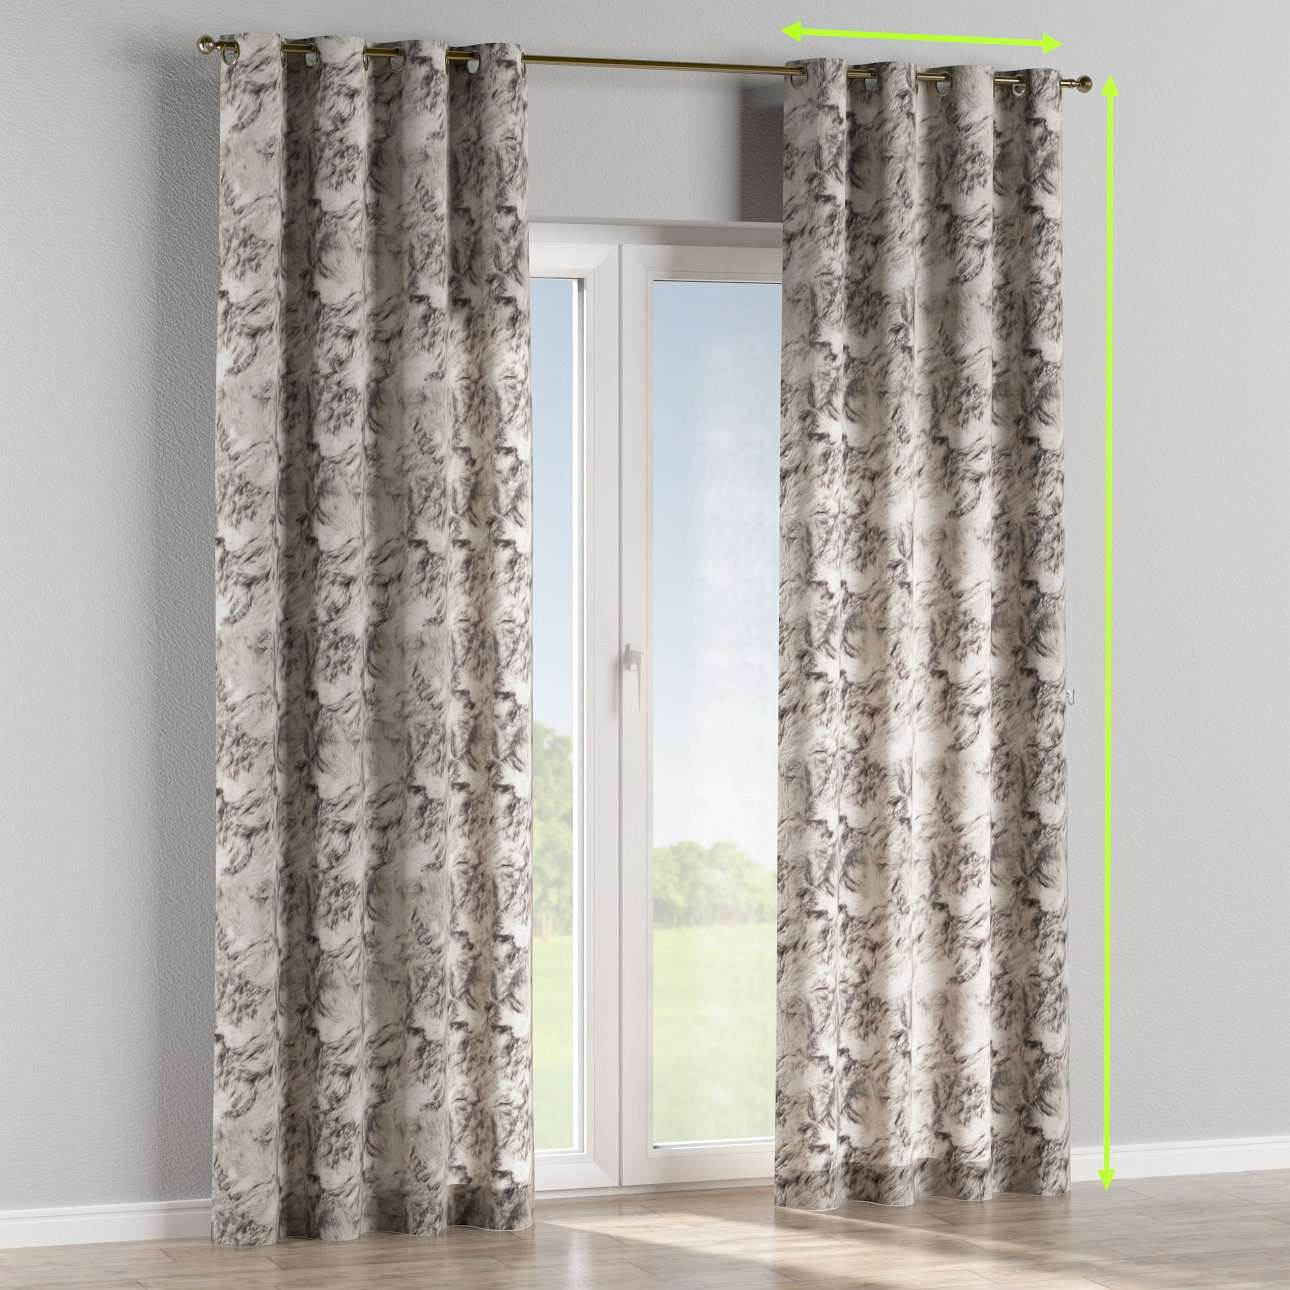 Eyelet lined curtains in collection Norge, fabric: 140-82